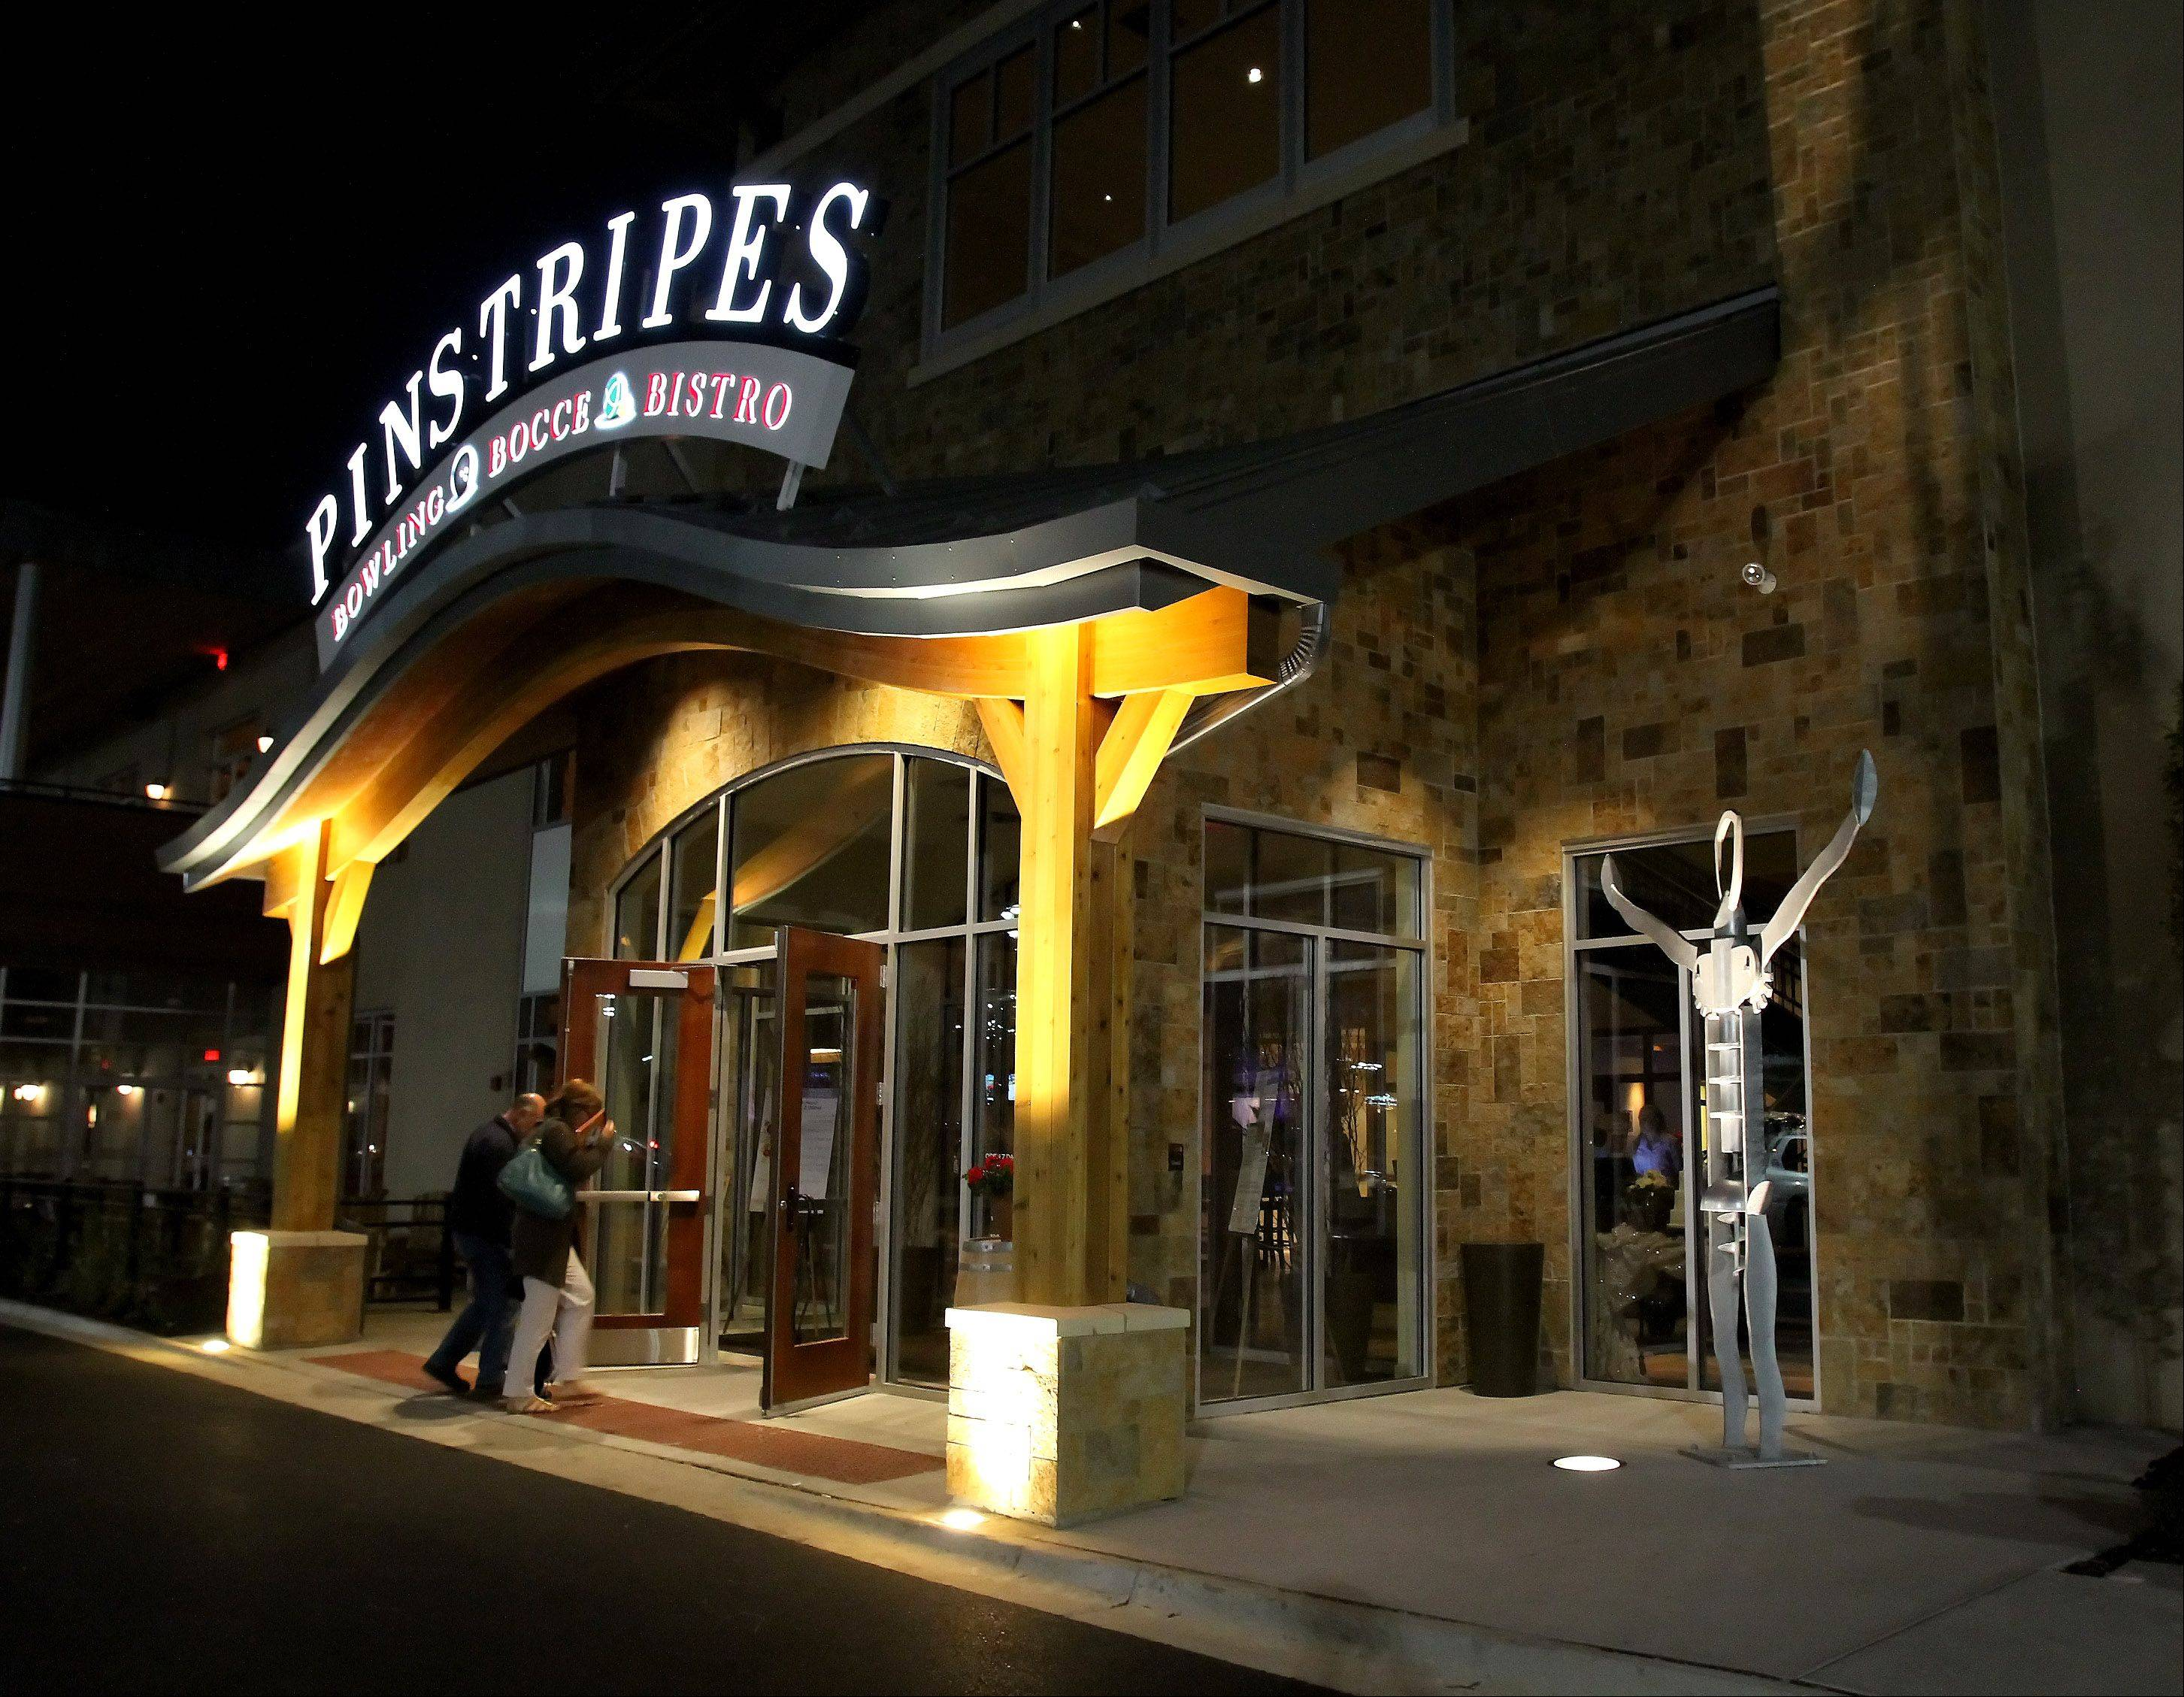 Pinstripes is a popular bowling and bocce bistro in Oak Brook.